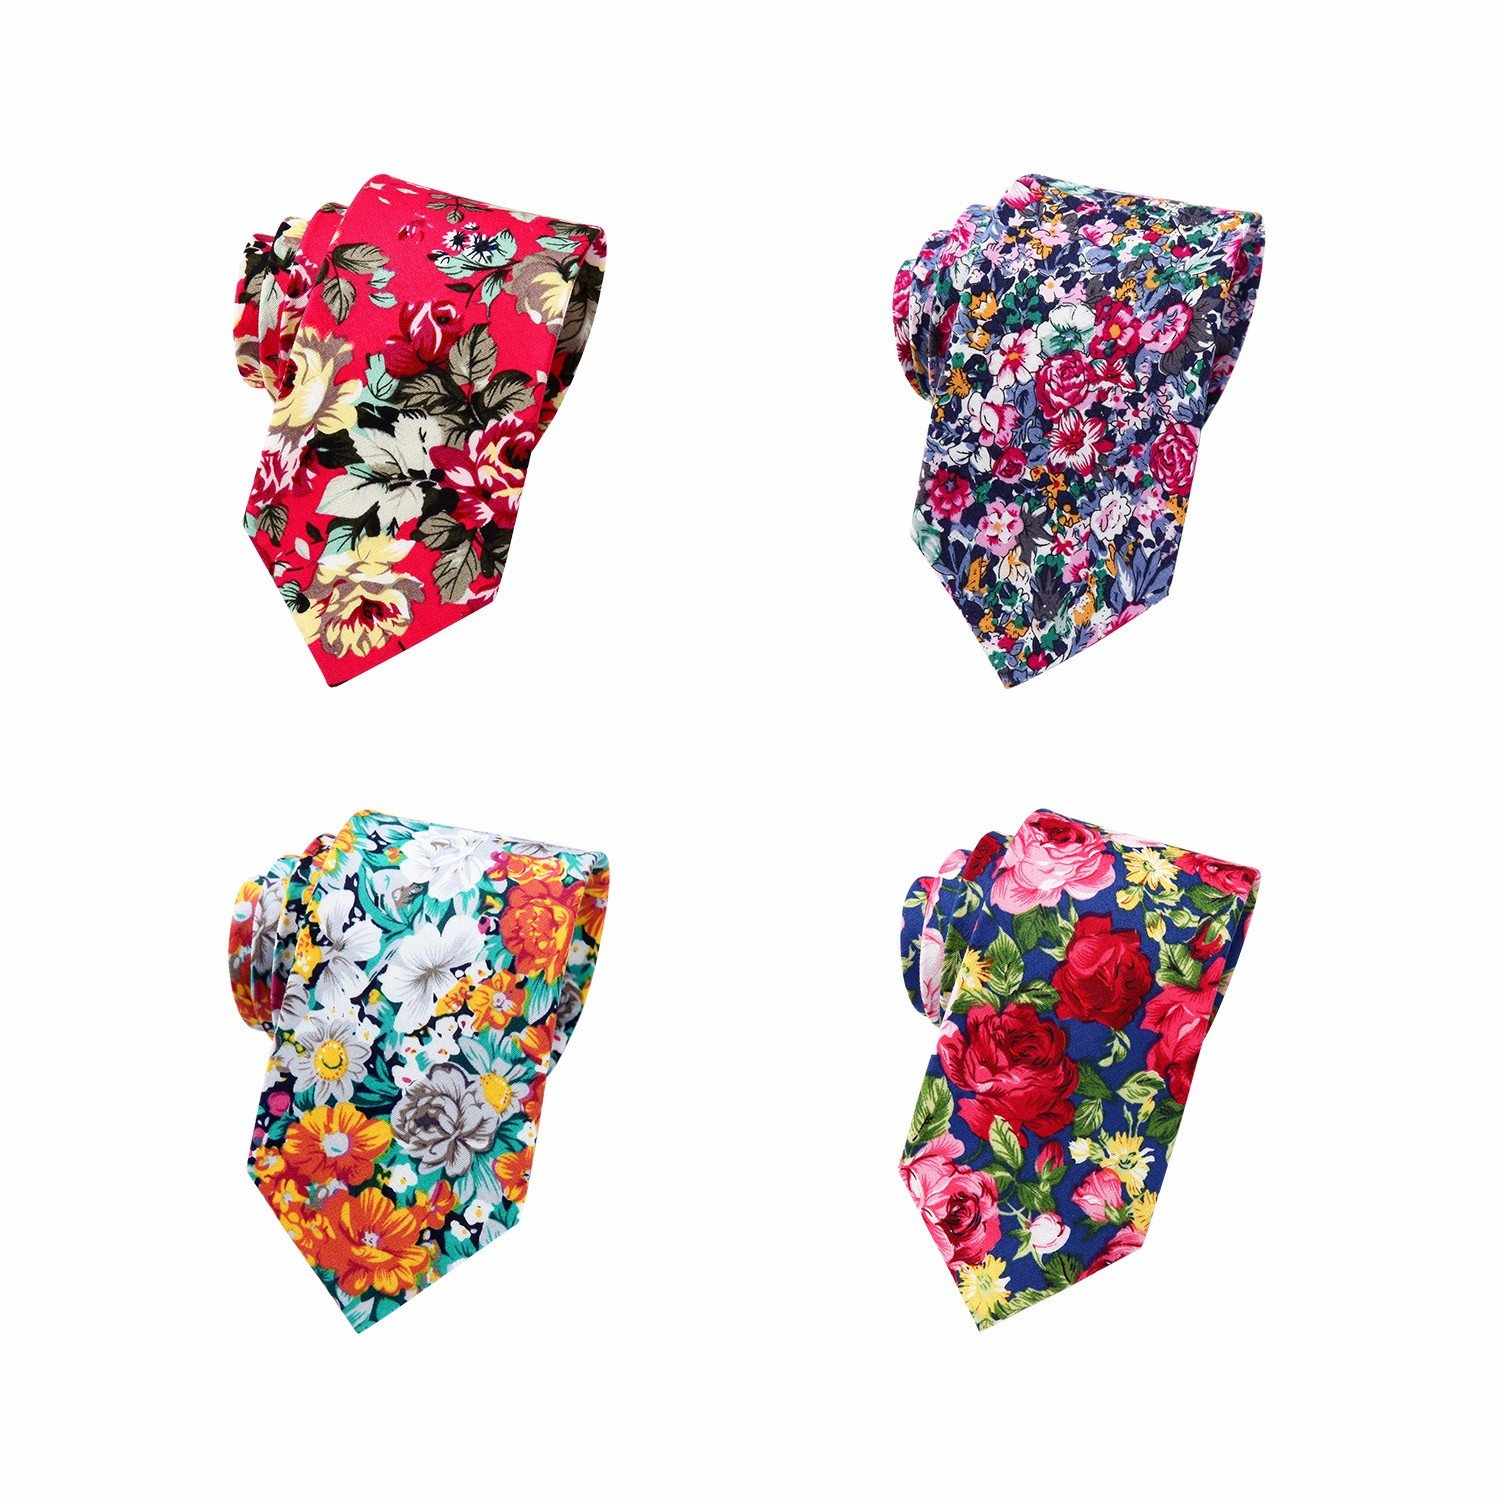 c1f5934e16d6 Tie Length: 59 inches(150cm); Tie Width: 2.75 inches(7cm); Handkerchief  size: 10 inches x 10 inches(25cm x 25cm);?Package Content: tie and  handkerchief.